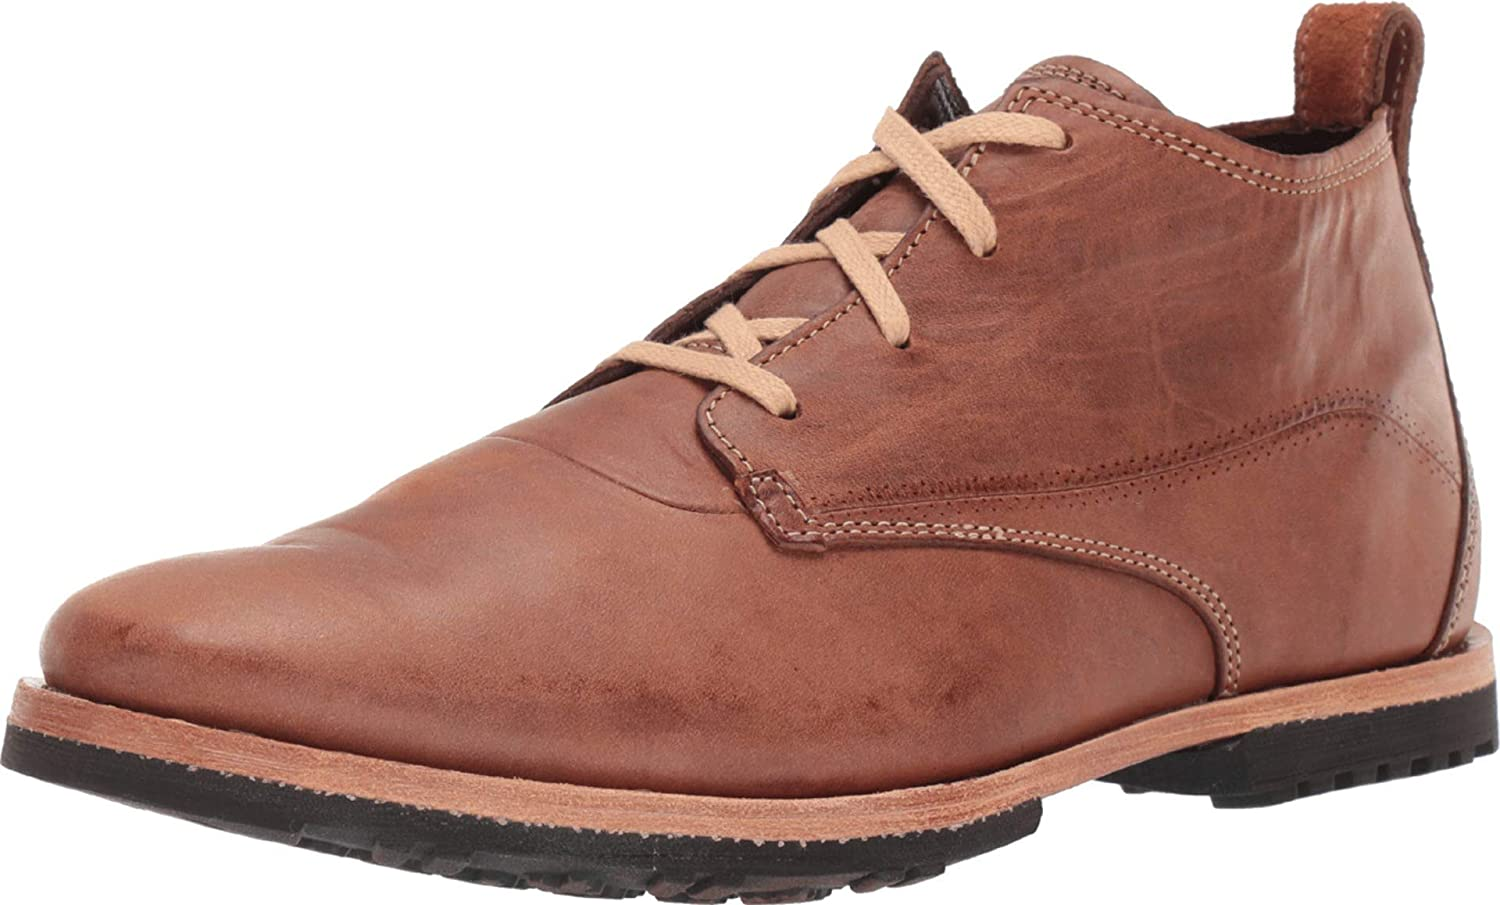 Timberland Boot Company Bardstown Plain Toe Chukka Medium